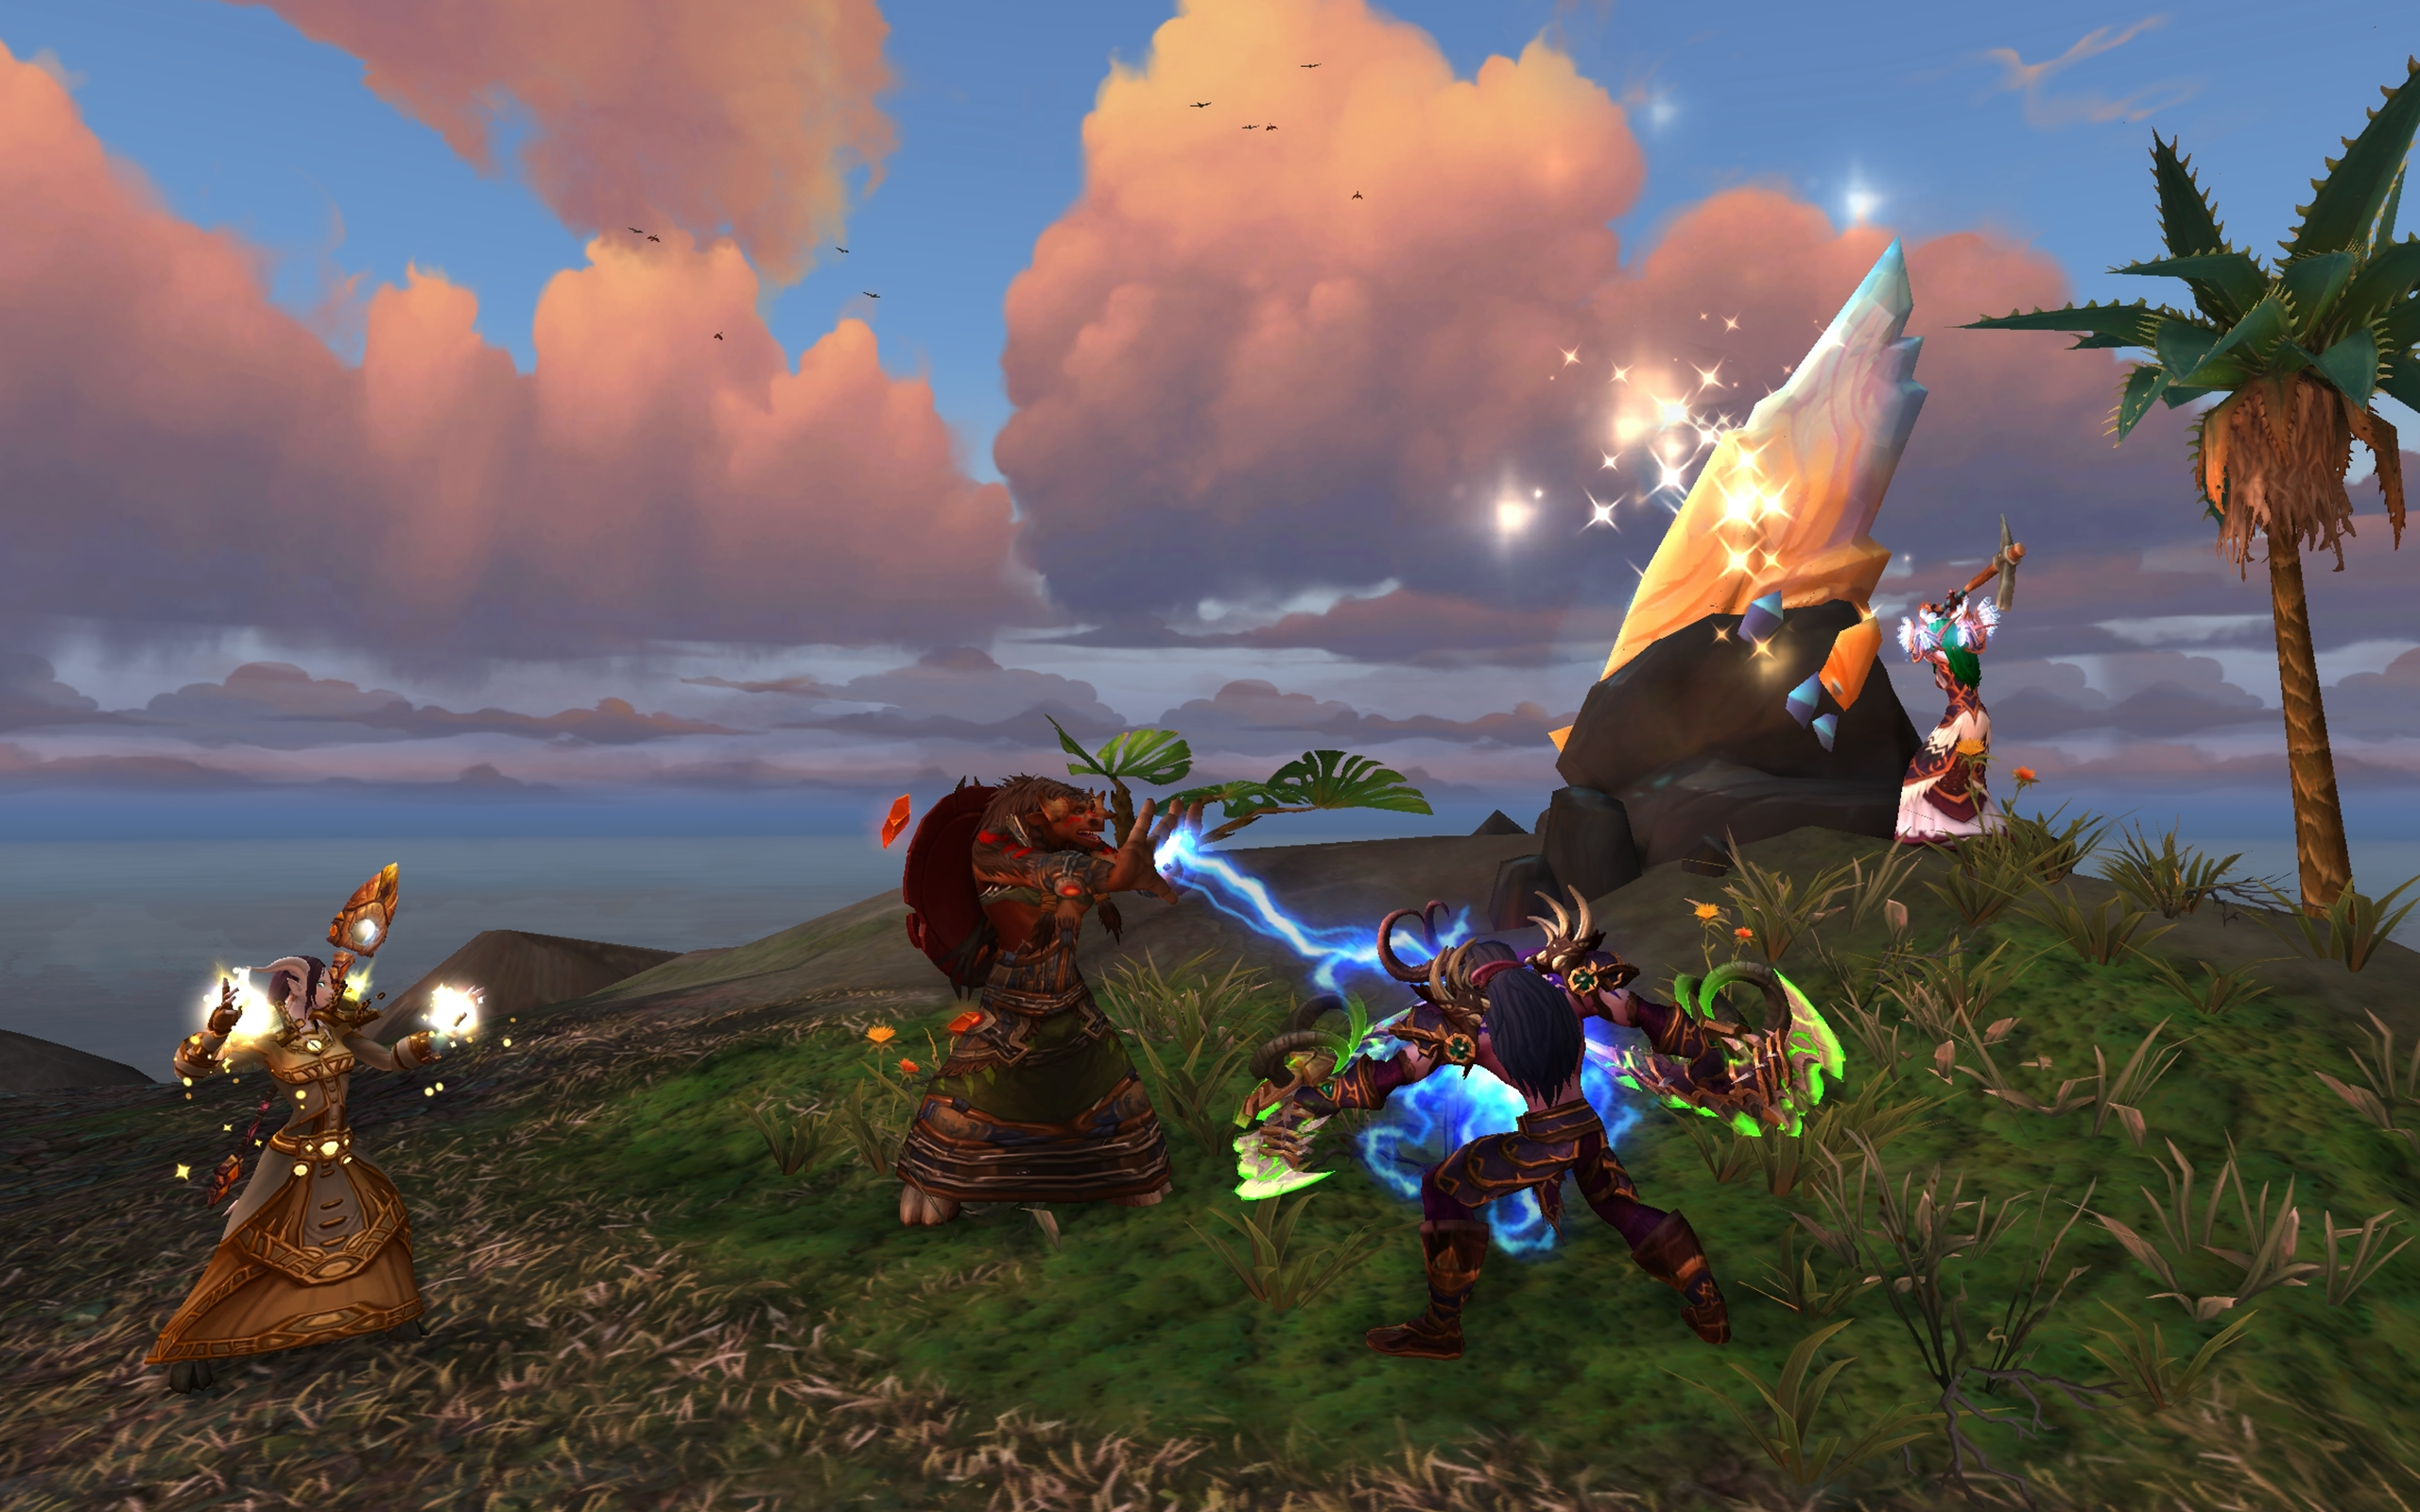 world of warcraft�s new island expeditions are a mix of